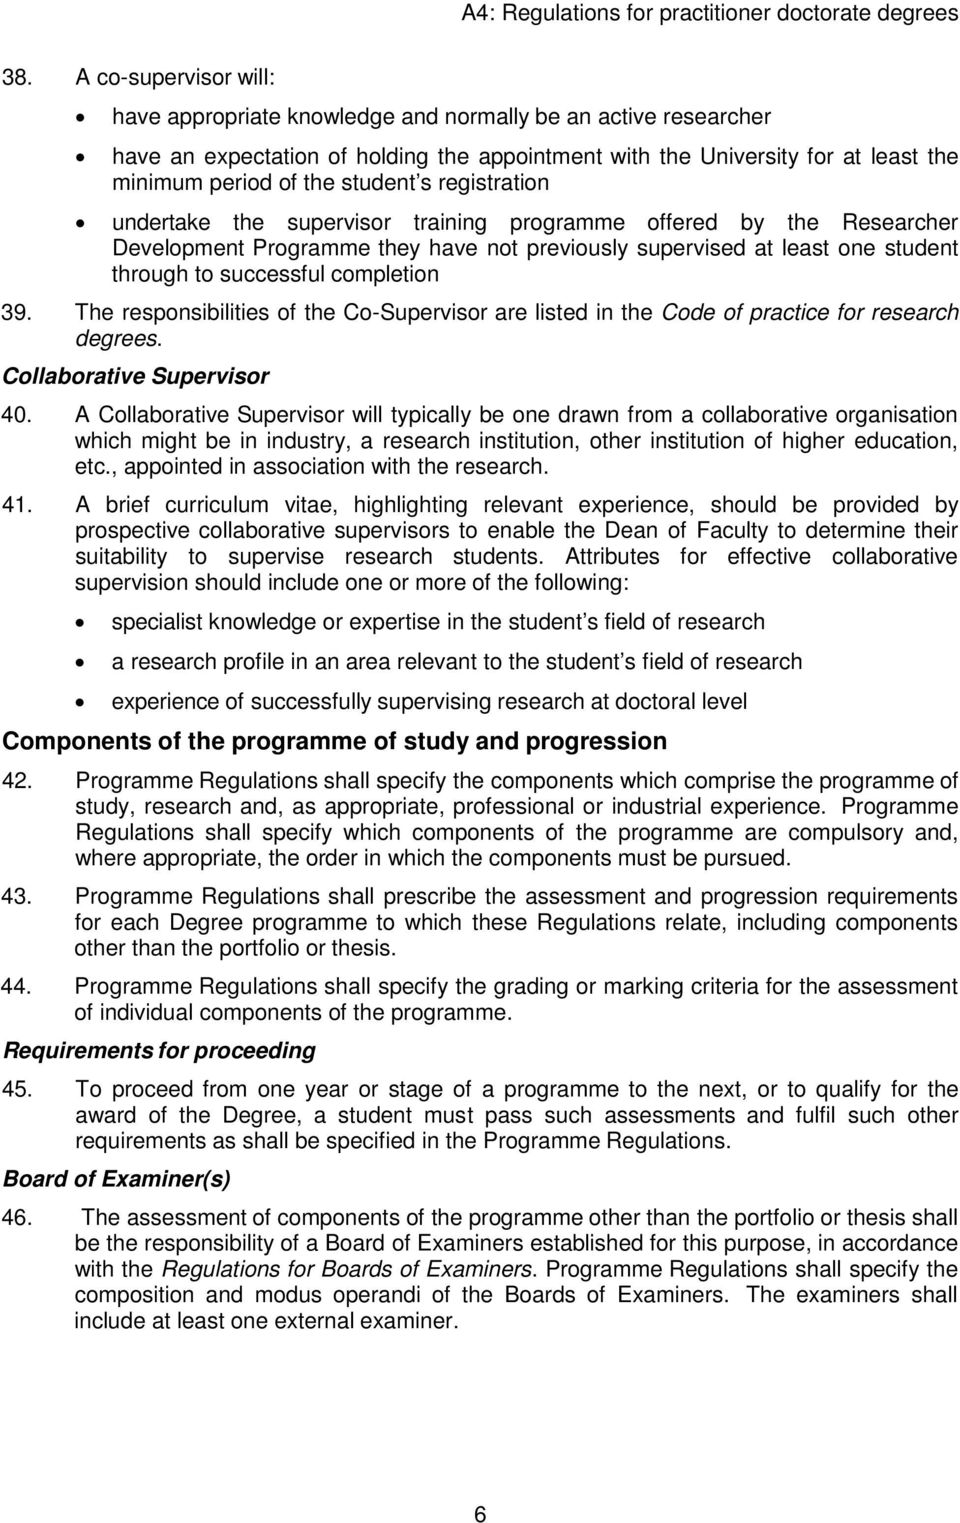 completion 39. The responsibilities of the Co-Supervisor are listed in the Code of practice for research degrees. Collaborative Supervisor 40.